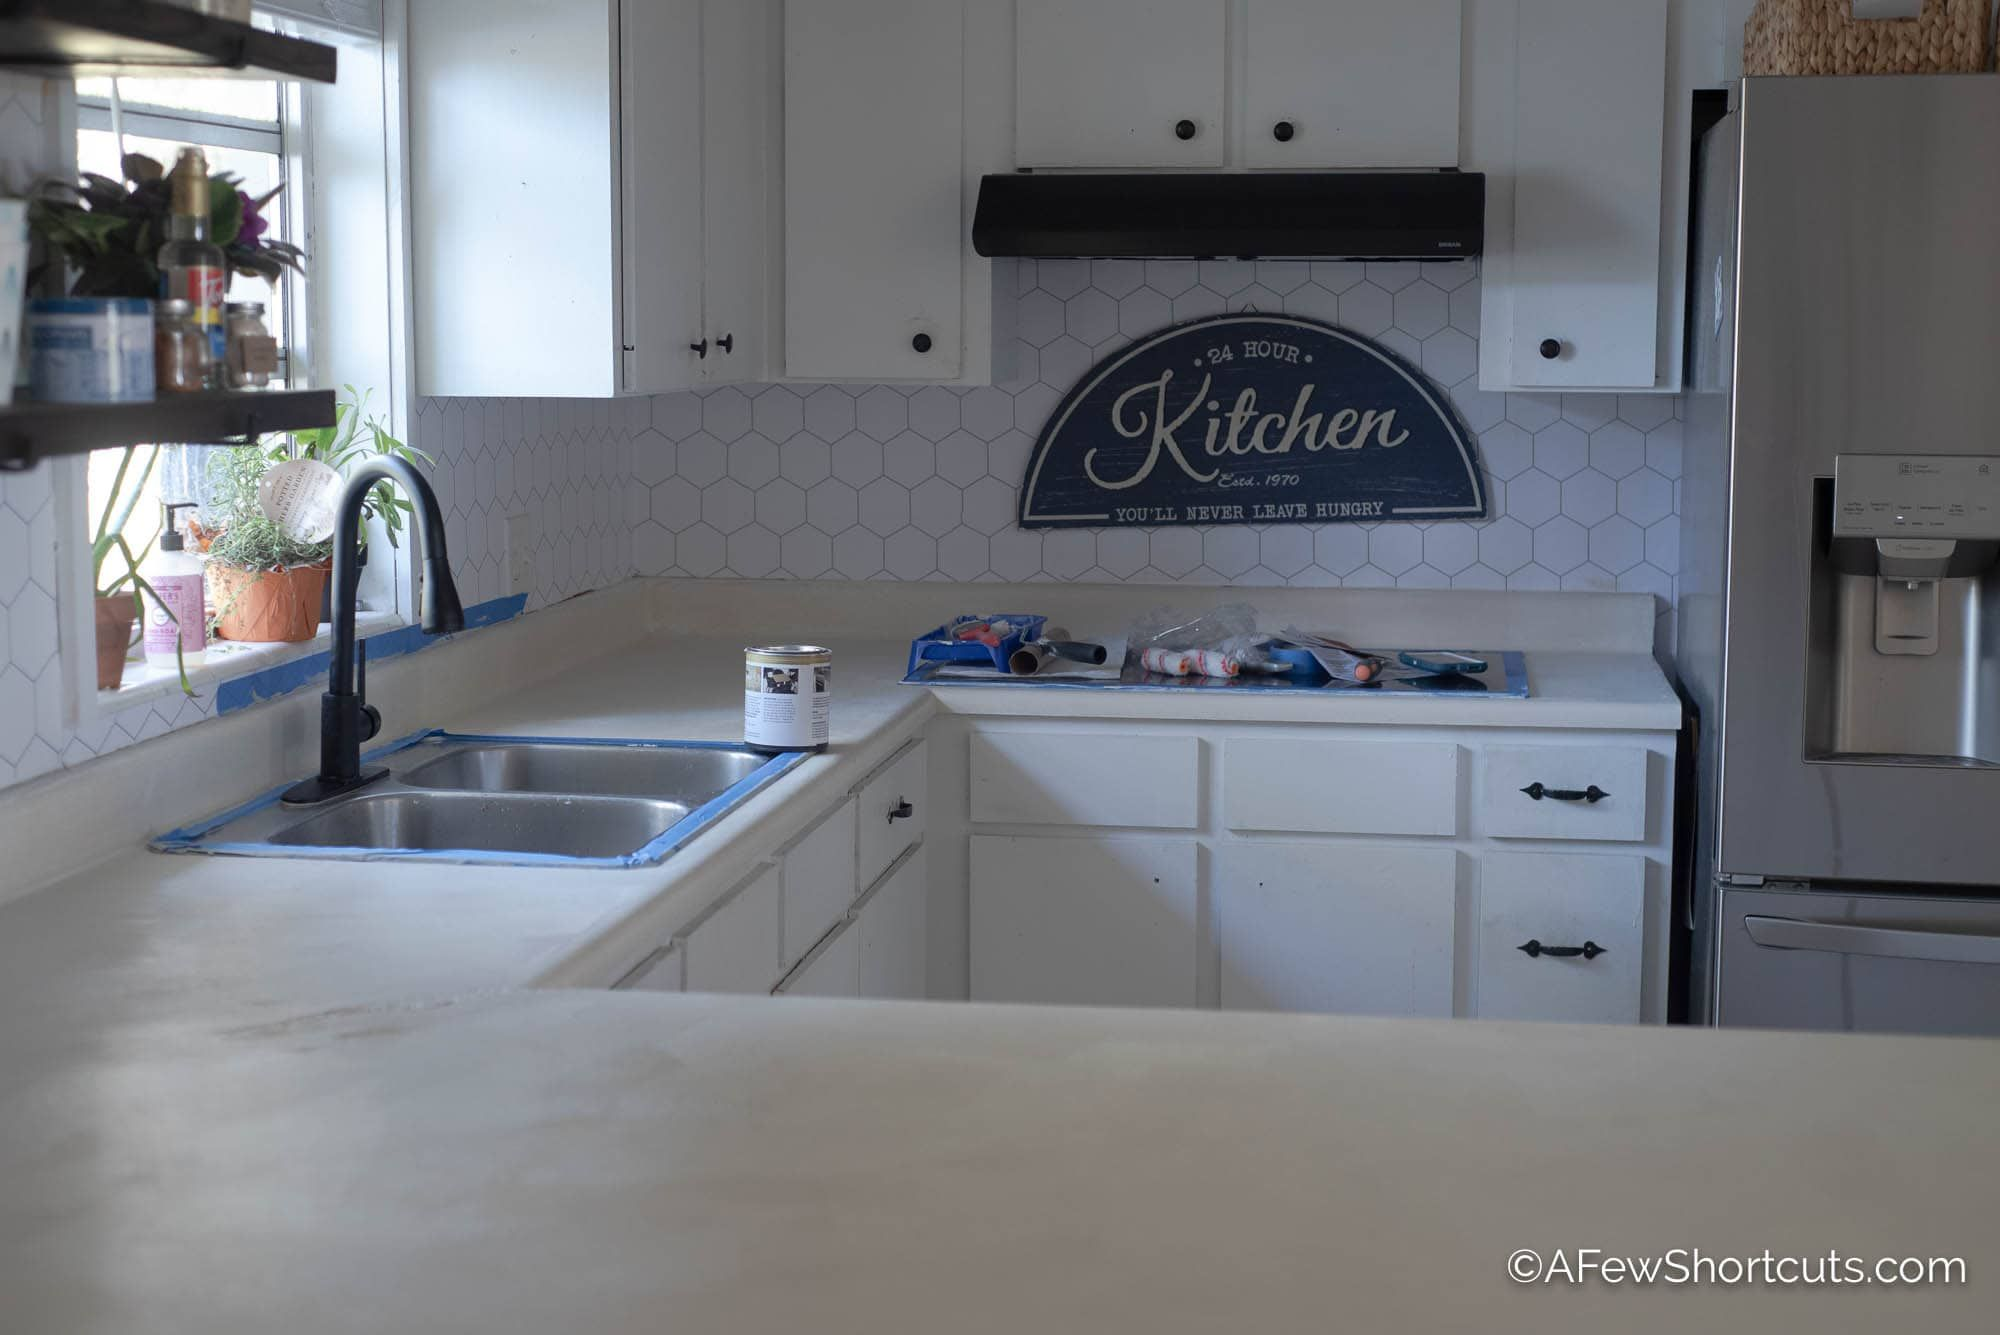 How To Resurface Countertops Low Voc Low Cost In 2020 Countertops Resurface Countertops Countertop Refinishing Kit